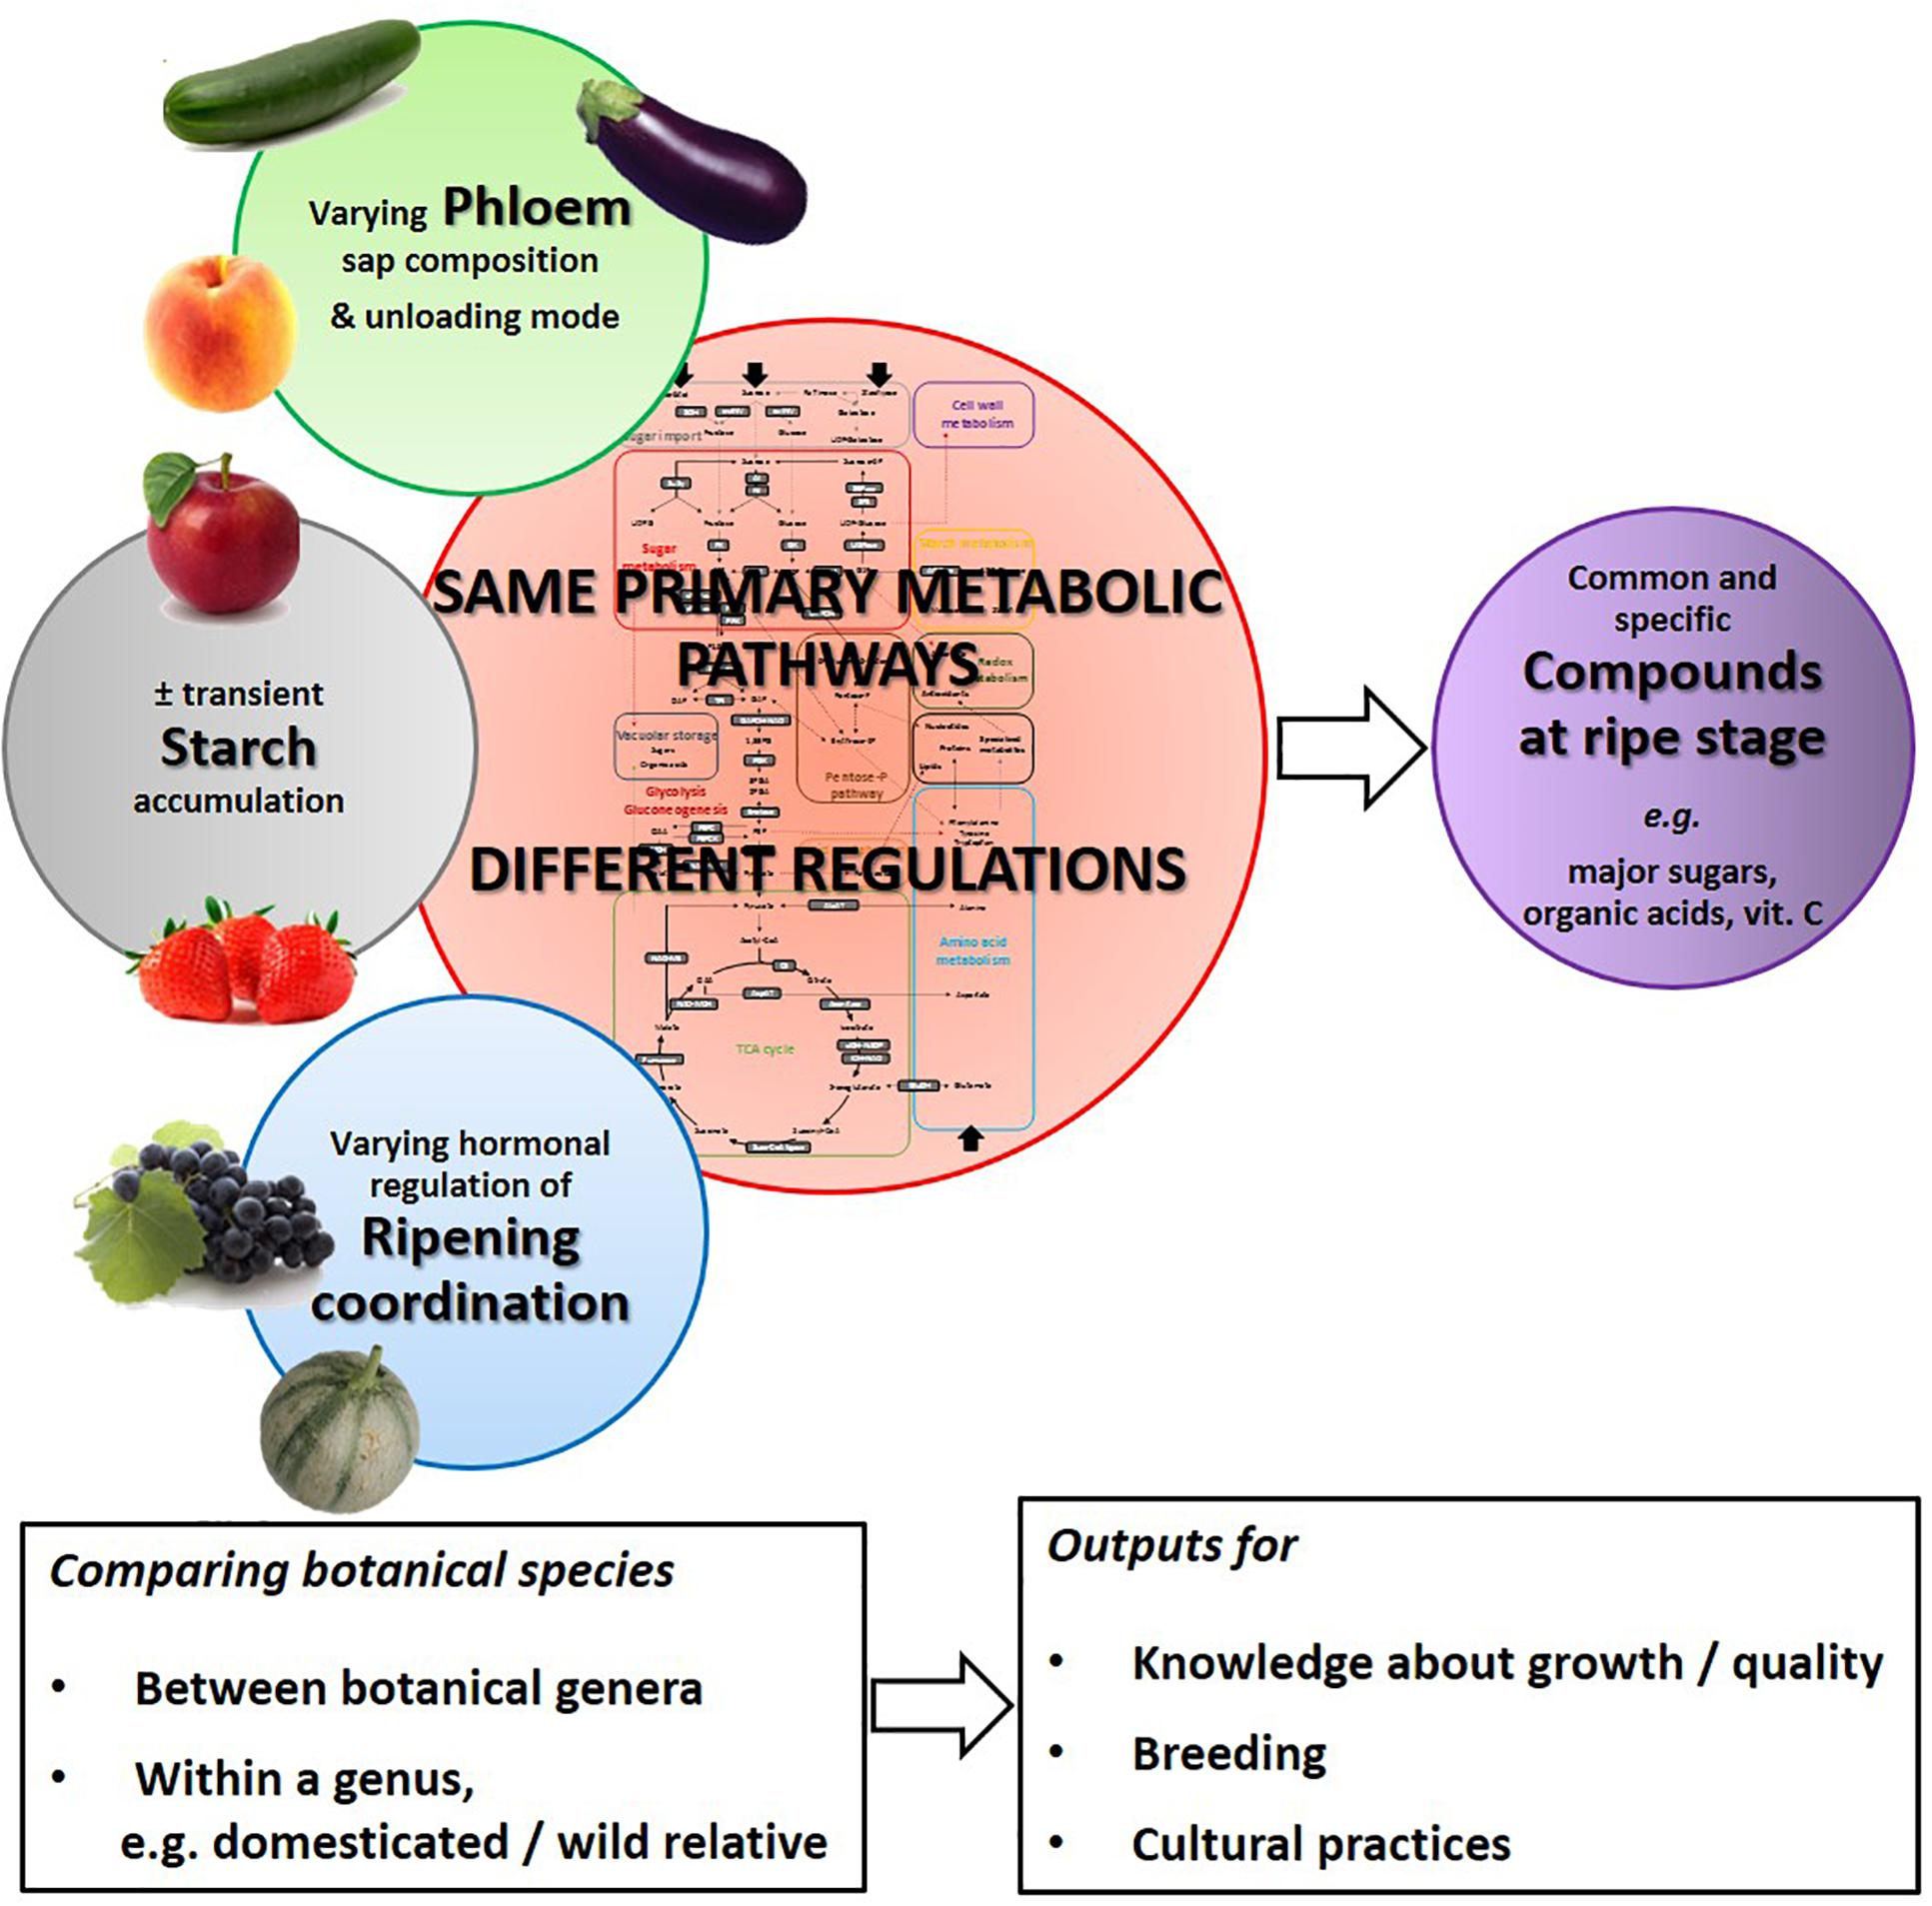 Frontiers | Fruit Salad in the Lab: Comparing Botanical Species to